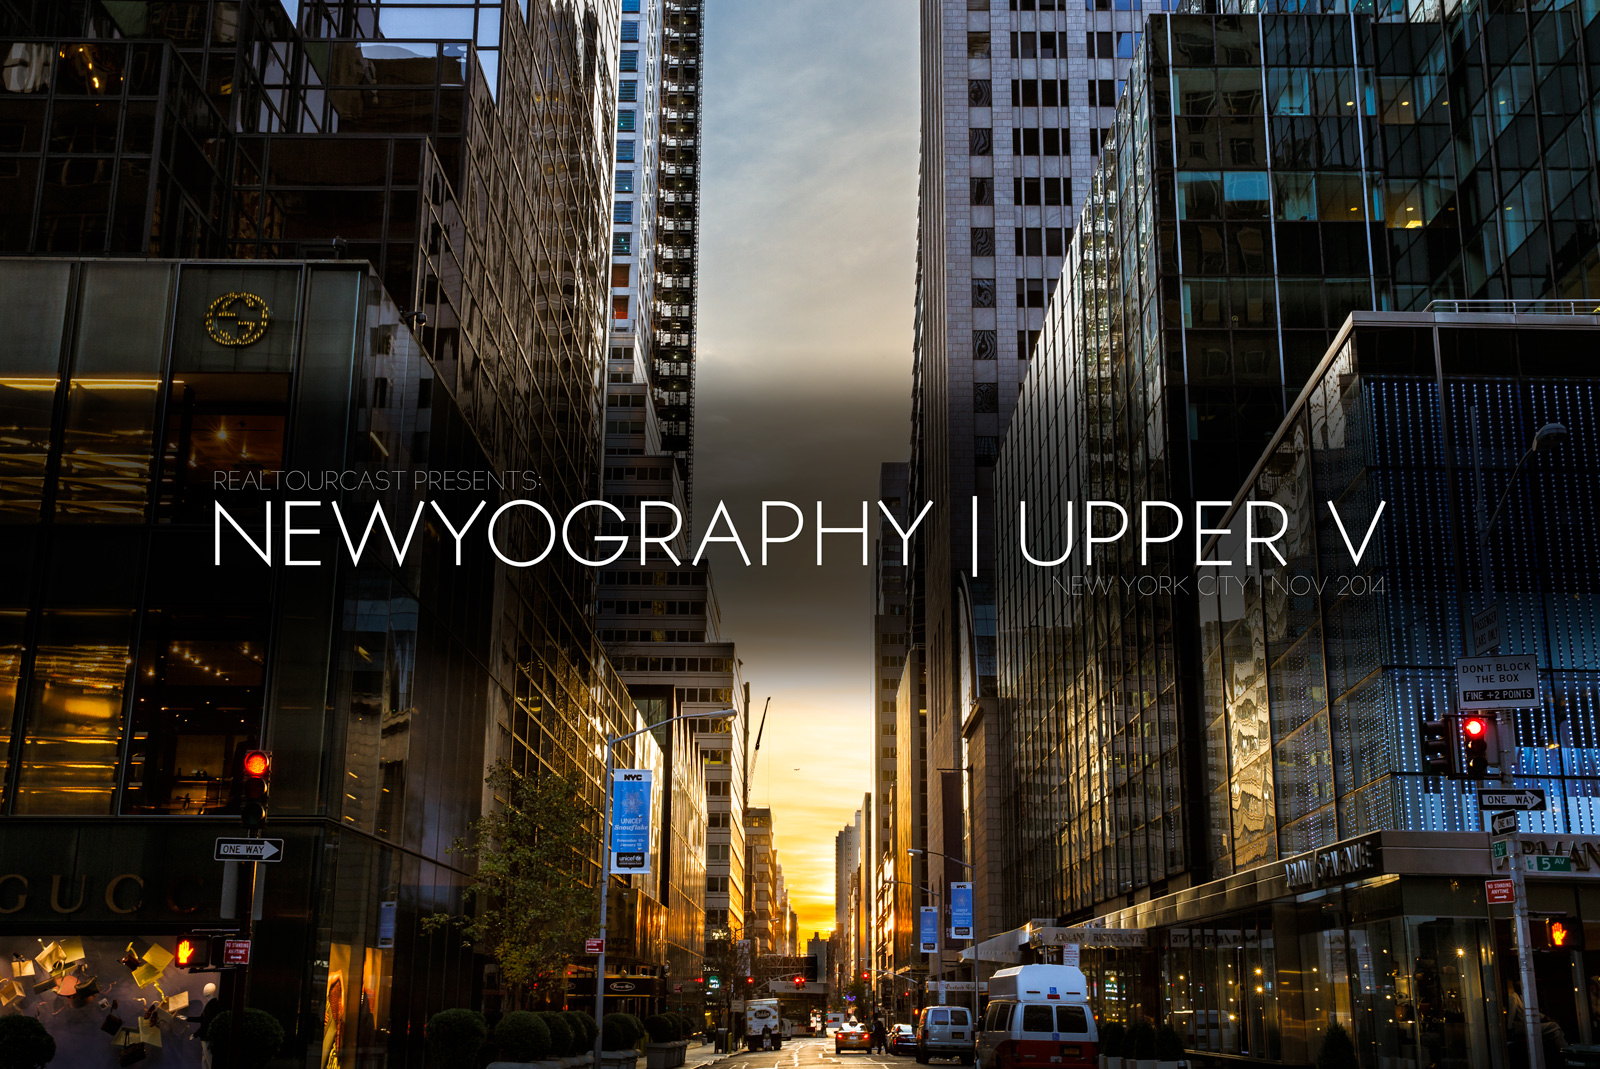 Newyography | Upper V | Architectural Photography